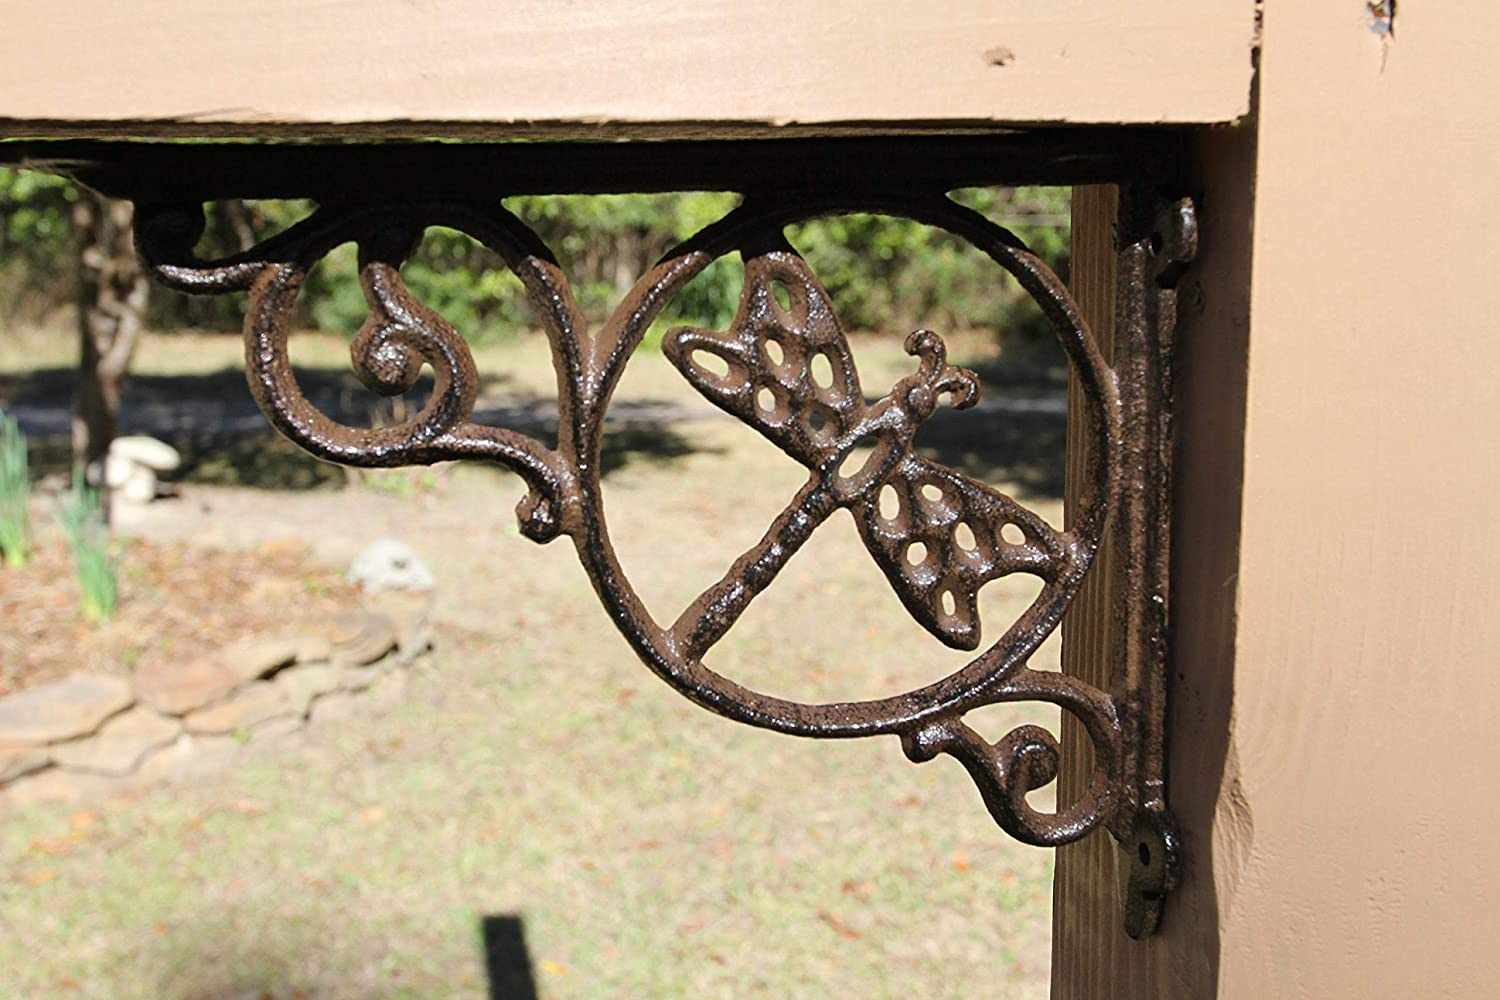 4 Cast Iron Shelf Brackets with a Large Dragon Fly in a circle.